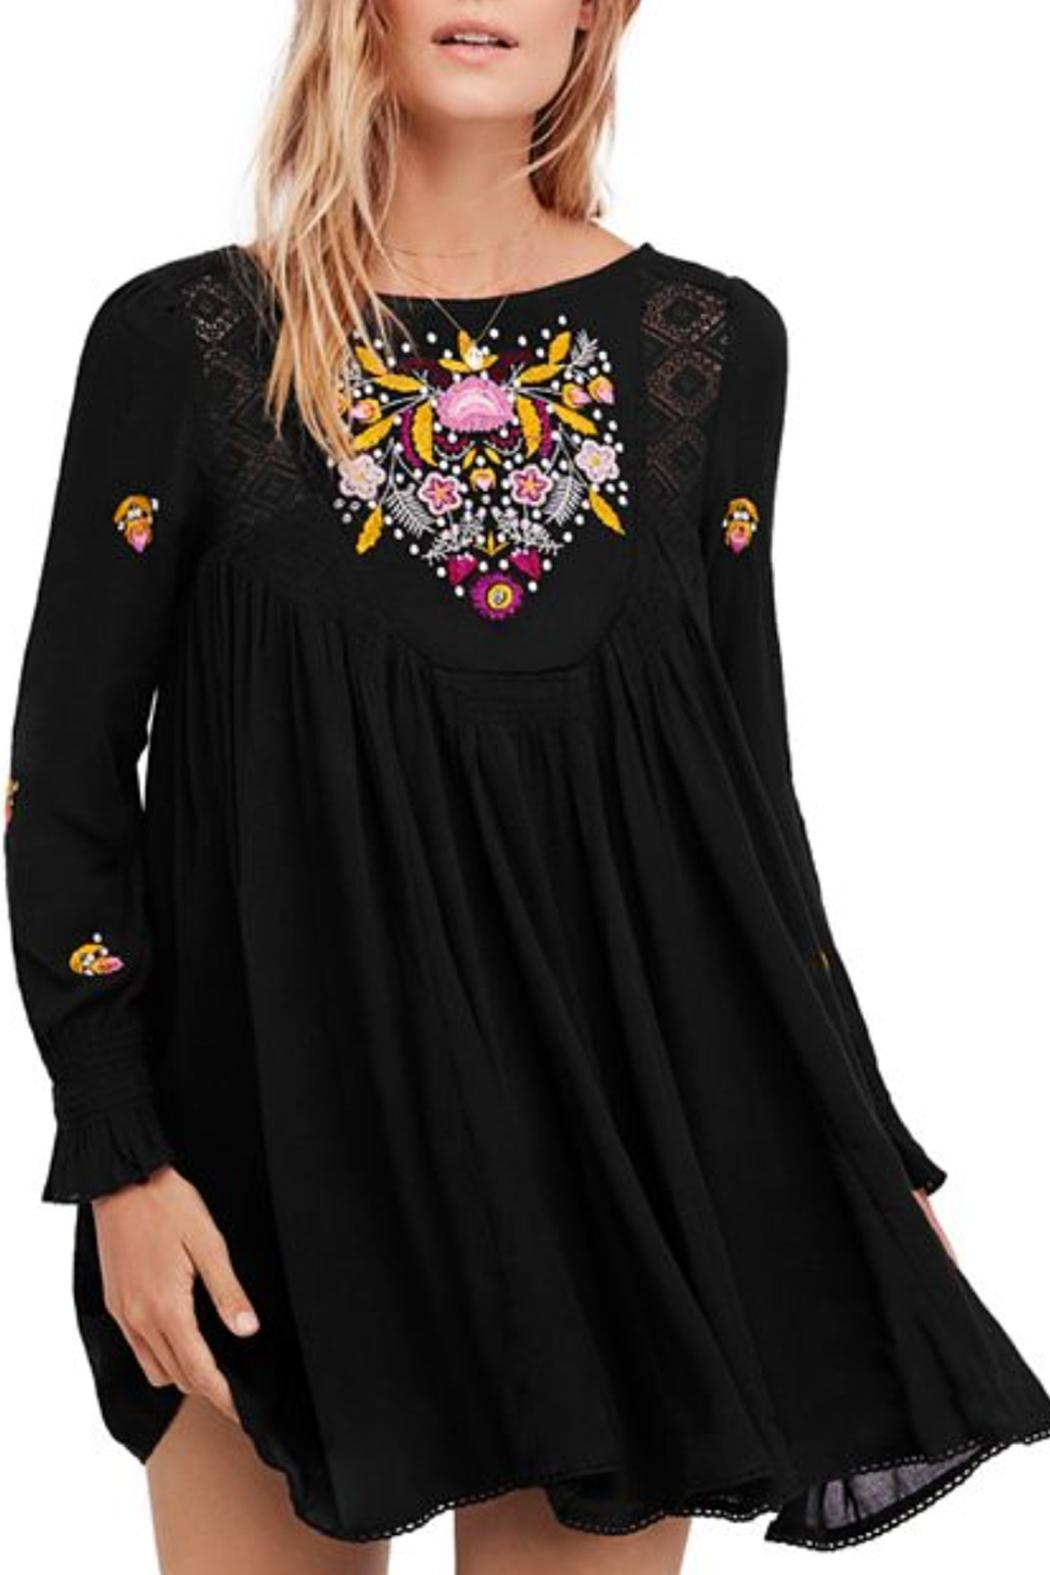 Free People Black Embroidered Dress - Main Image